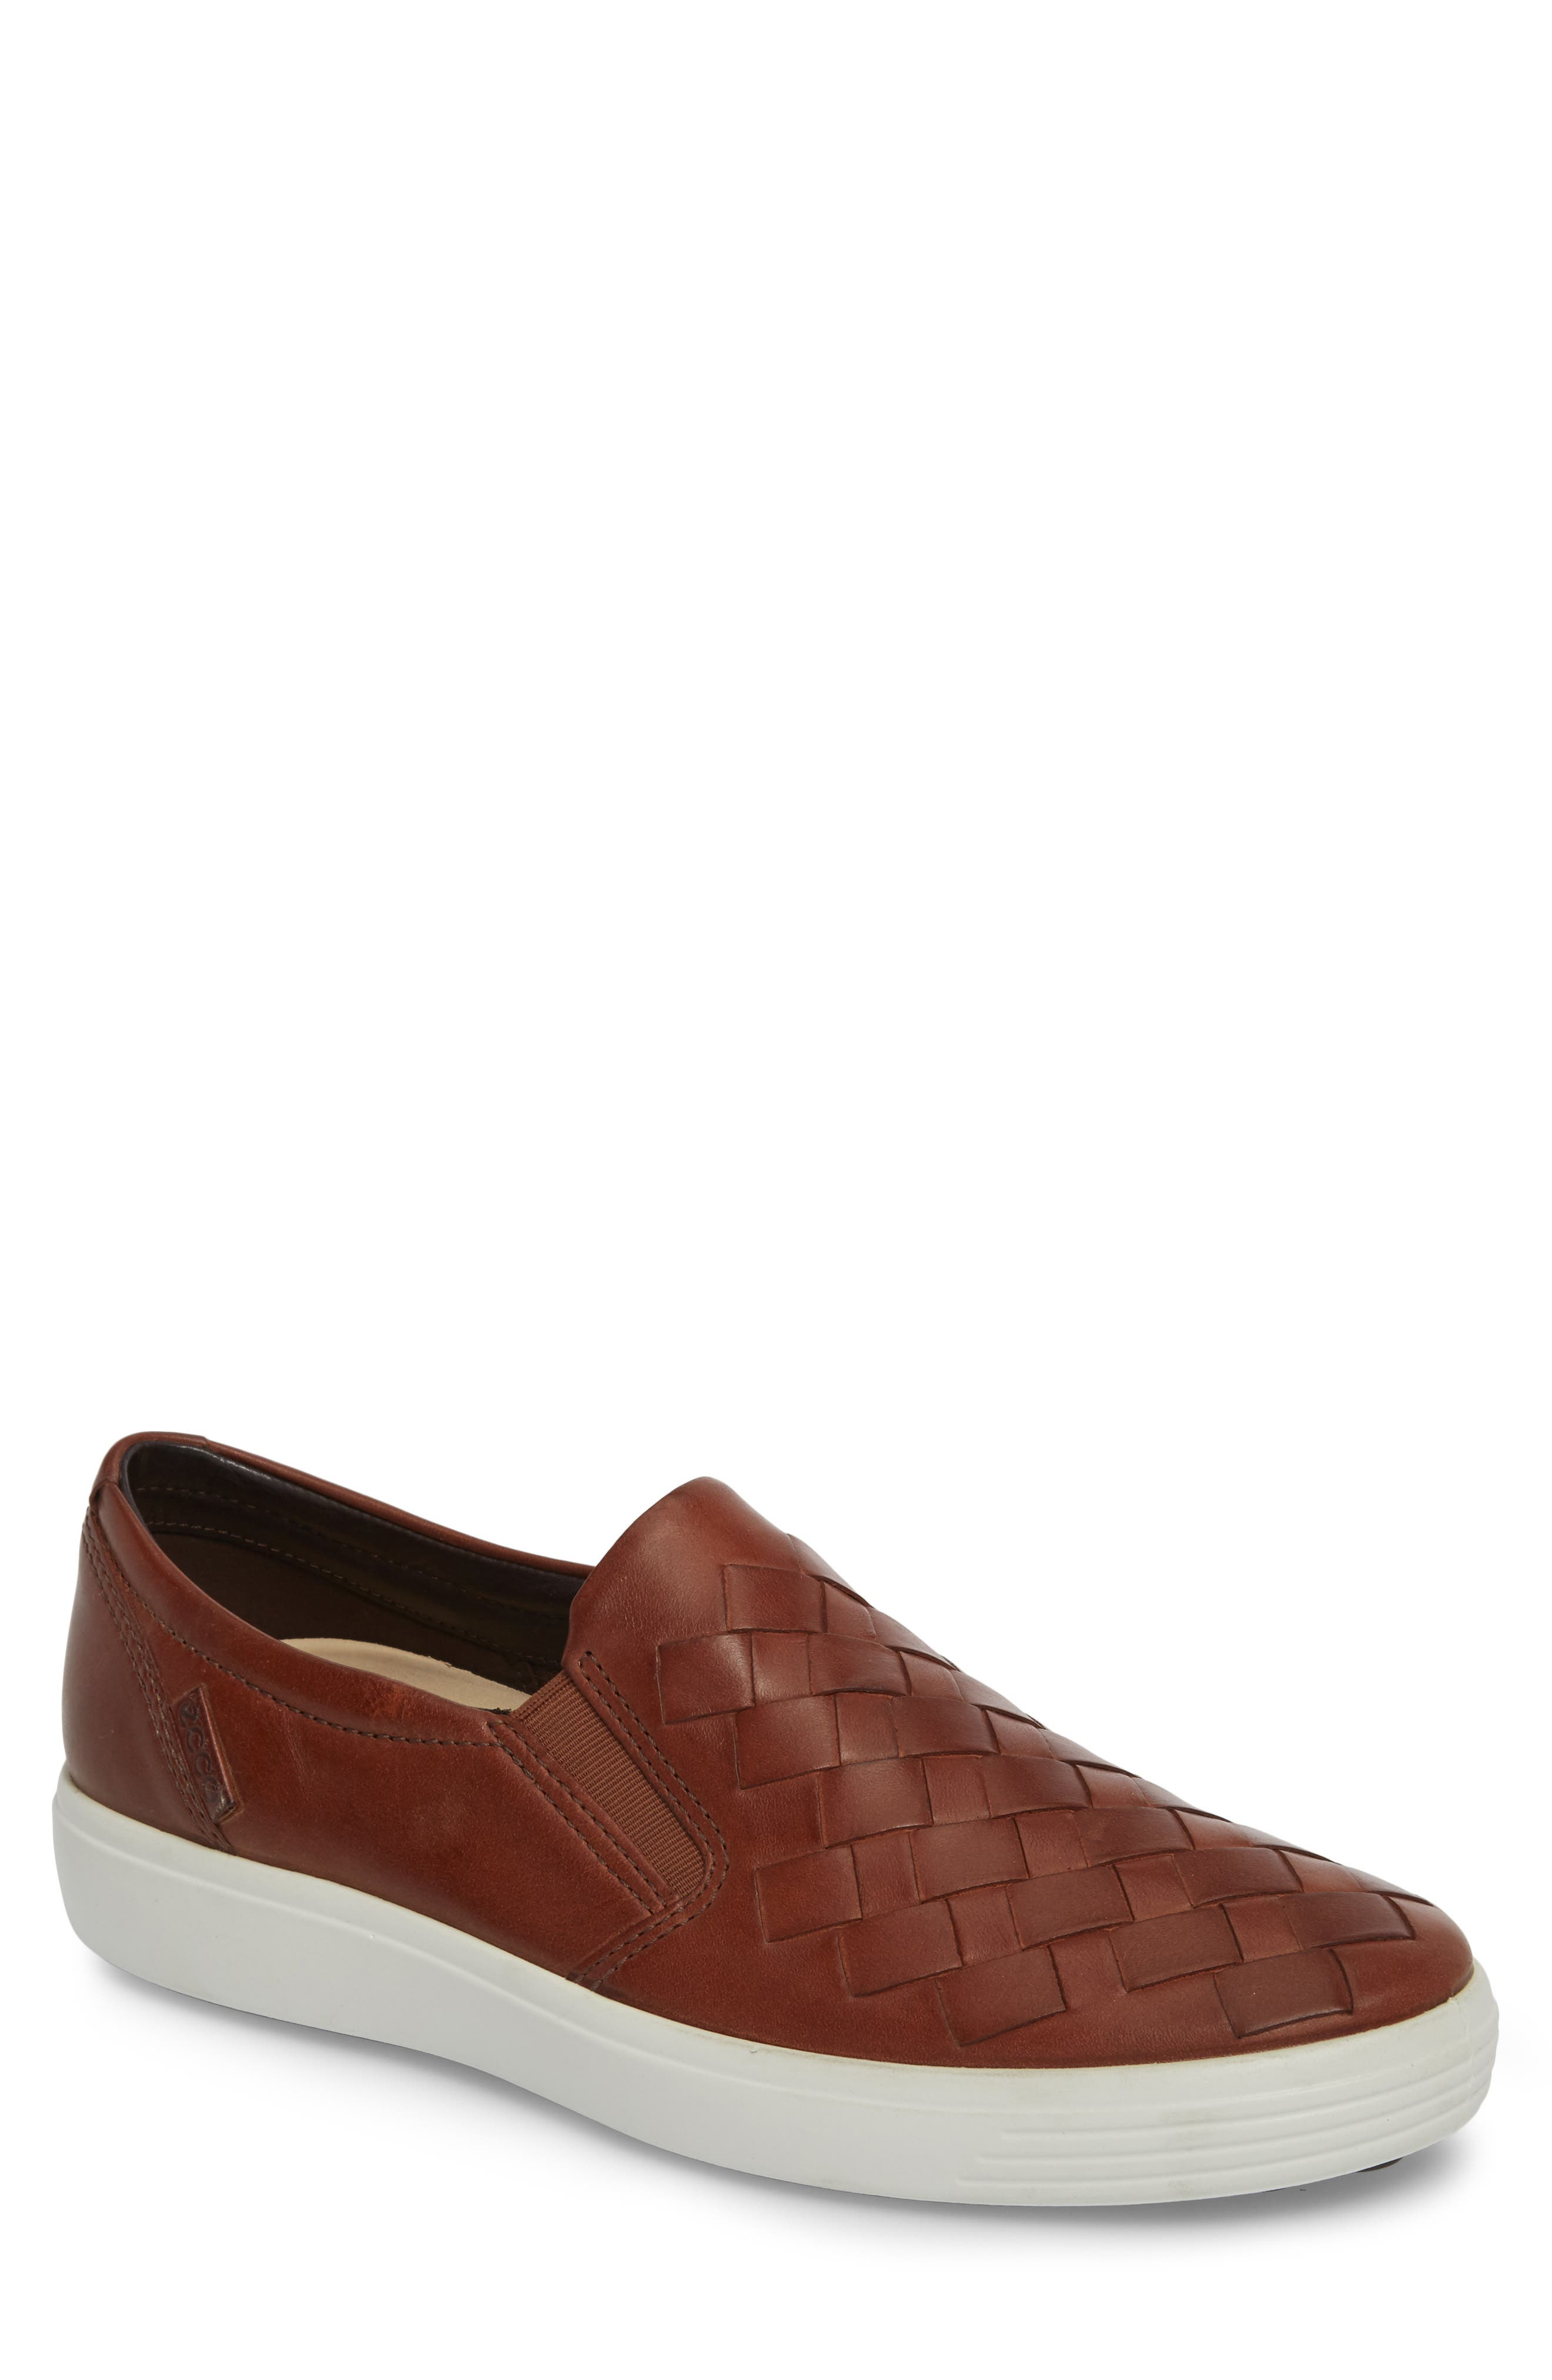 Soft 7 Woven Slip-On Sneaker,                         Main,                         color, MAHOGANY LEATHER